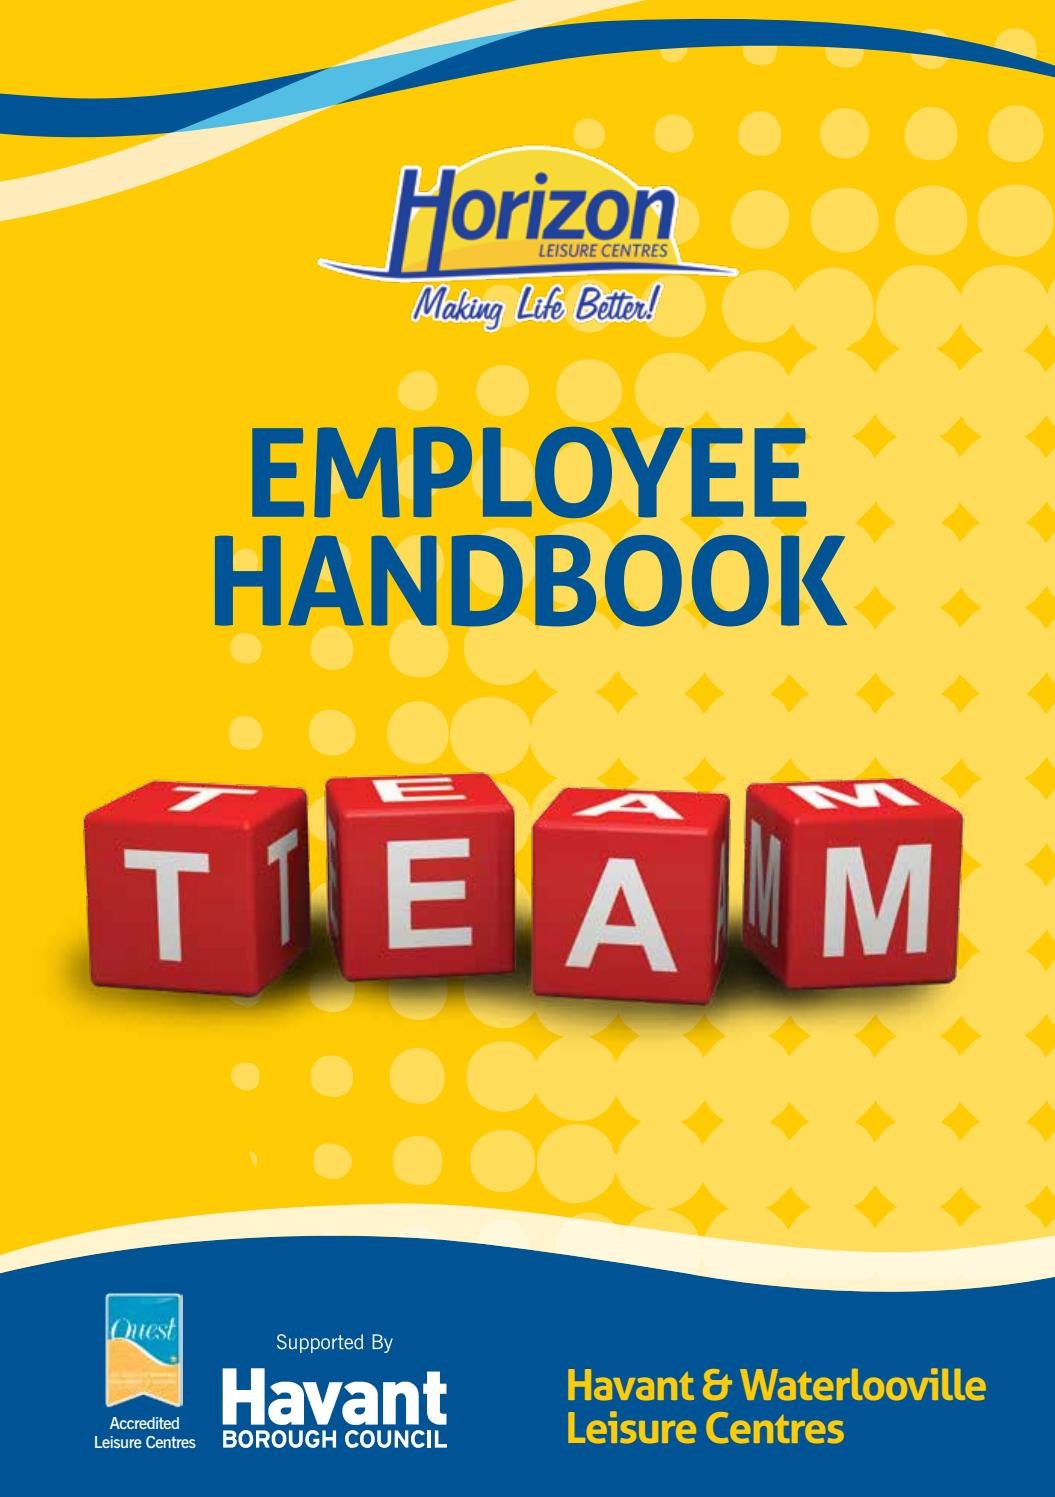 Employee Handbook: Free Template & Essentials to Include